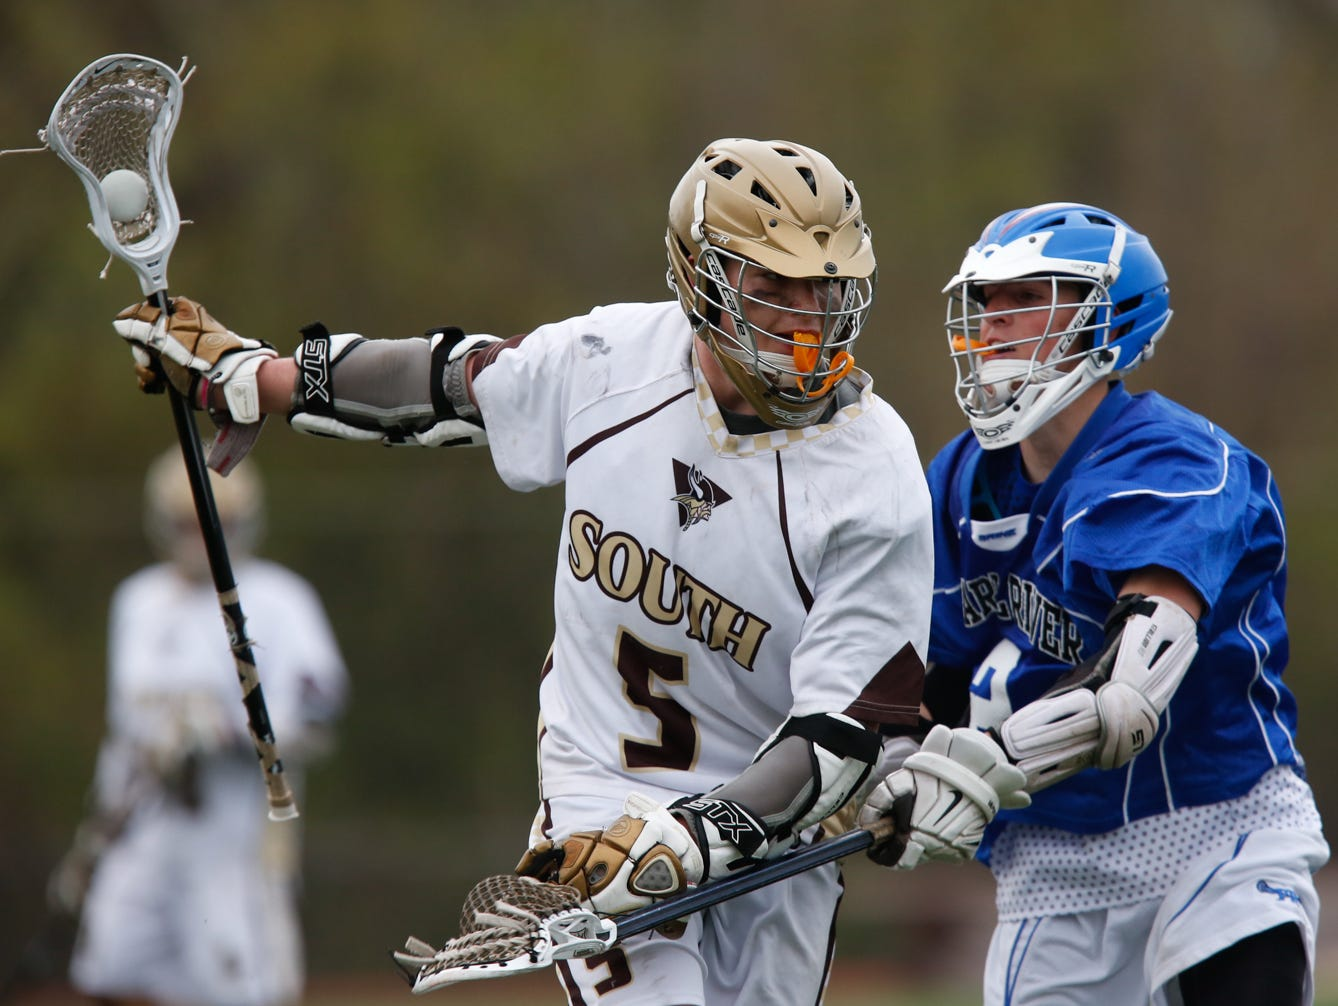 Clarkstown South and Pearl River play a boys Lacrosse game at Clarkstown South High School in West Nyack on April, 26, 2016.